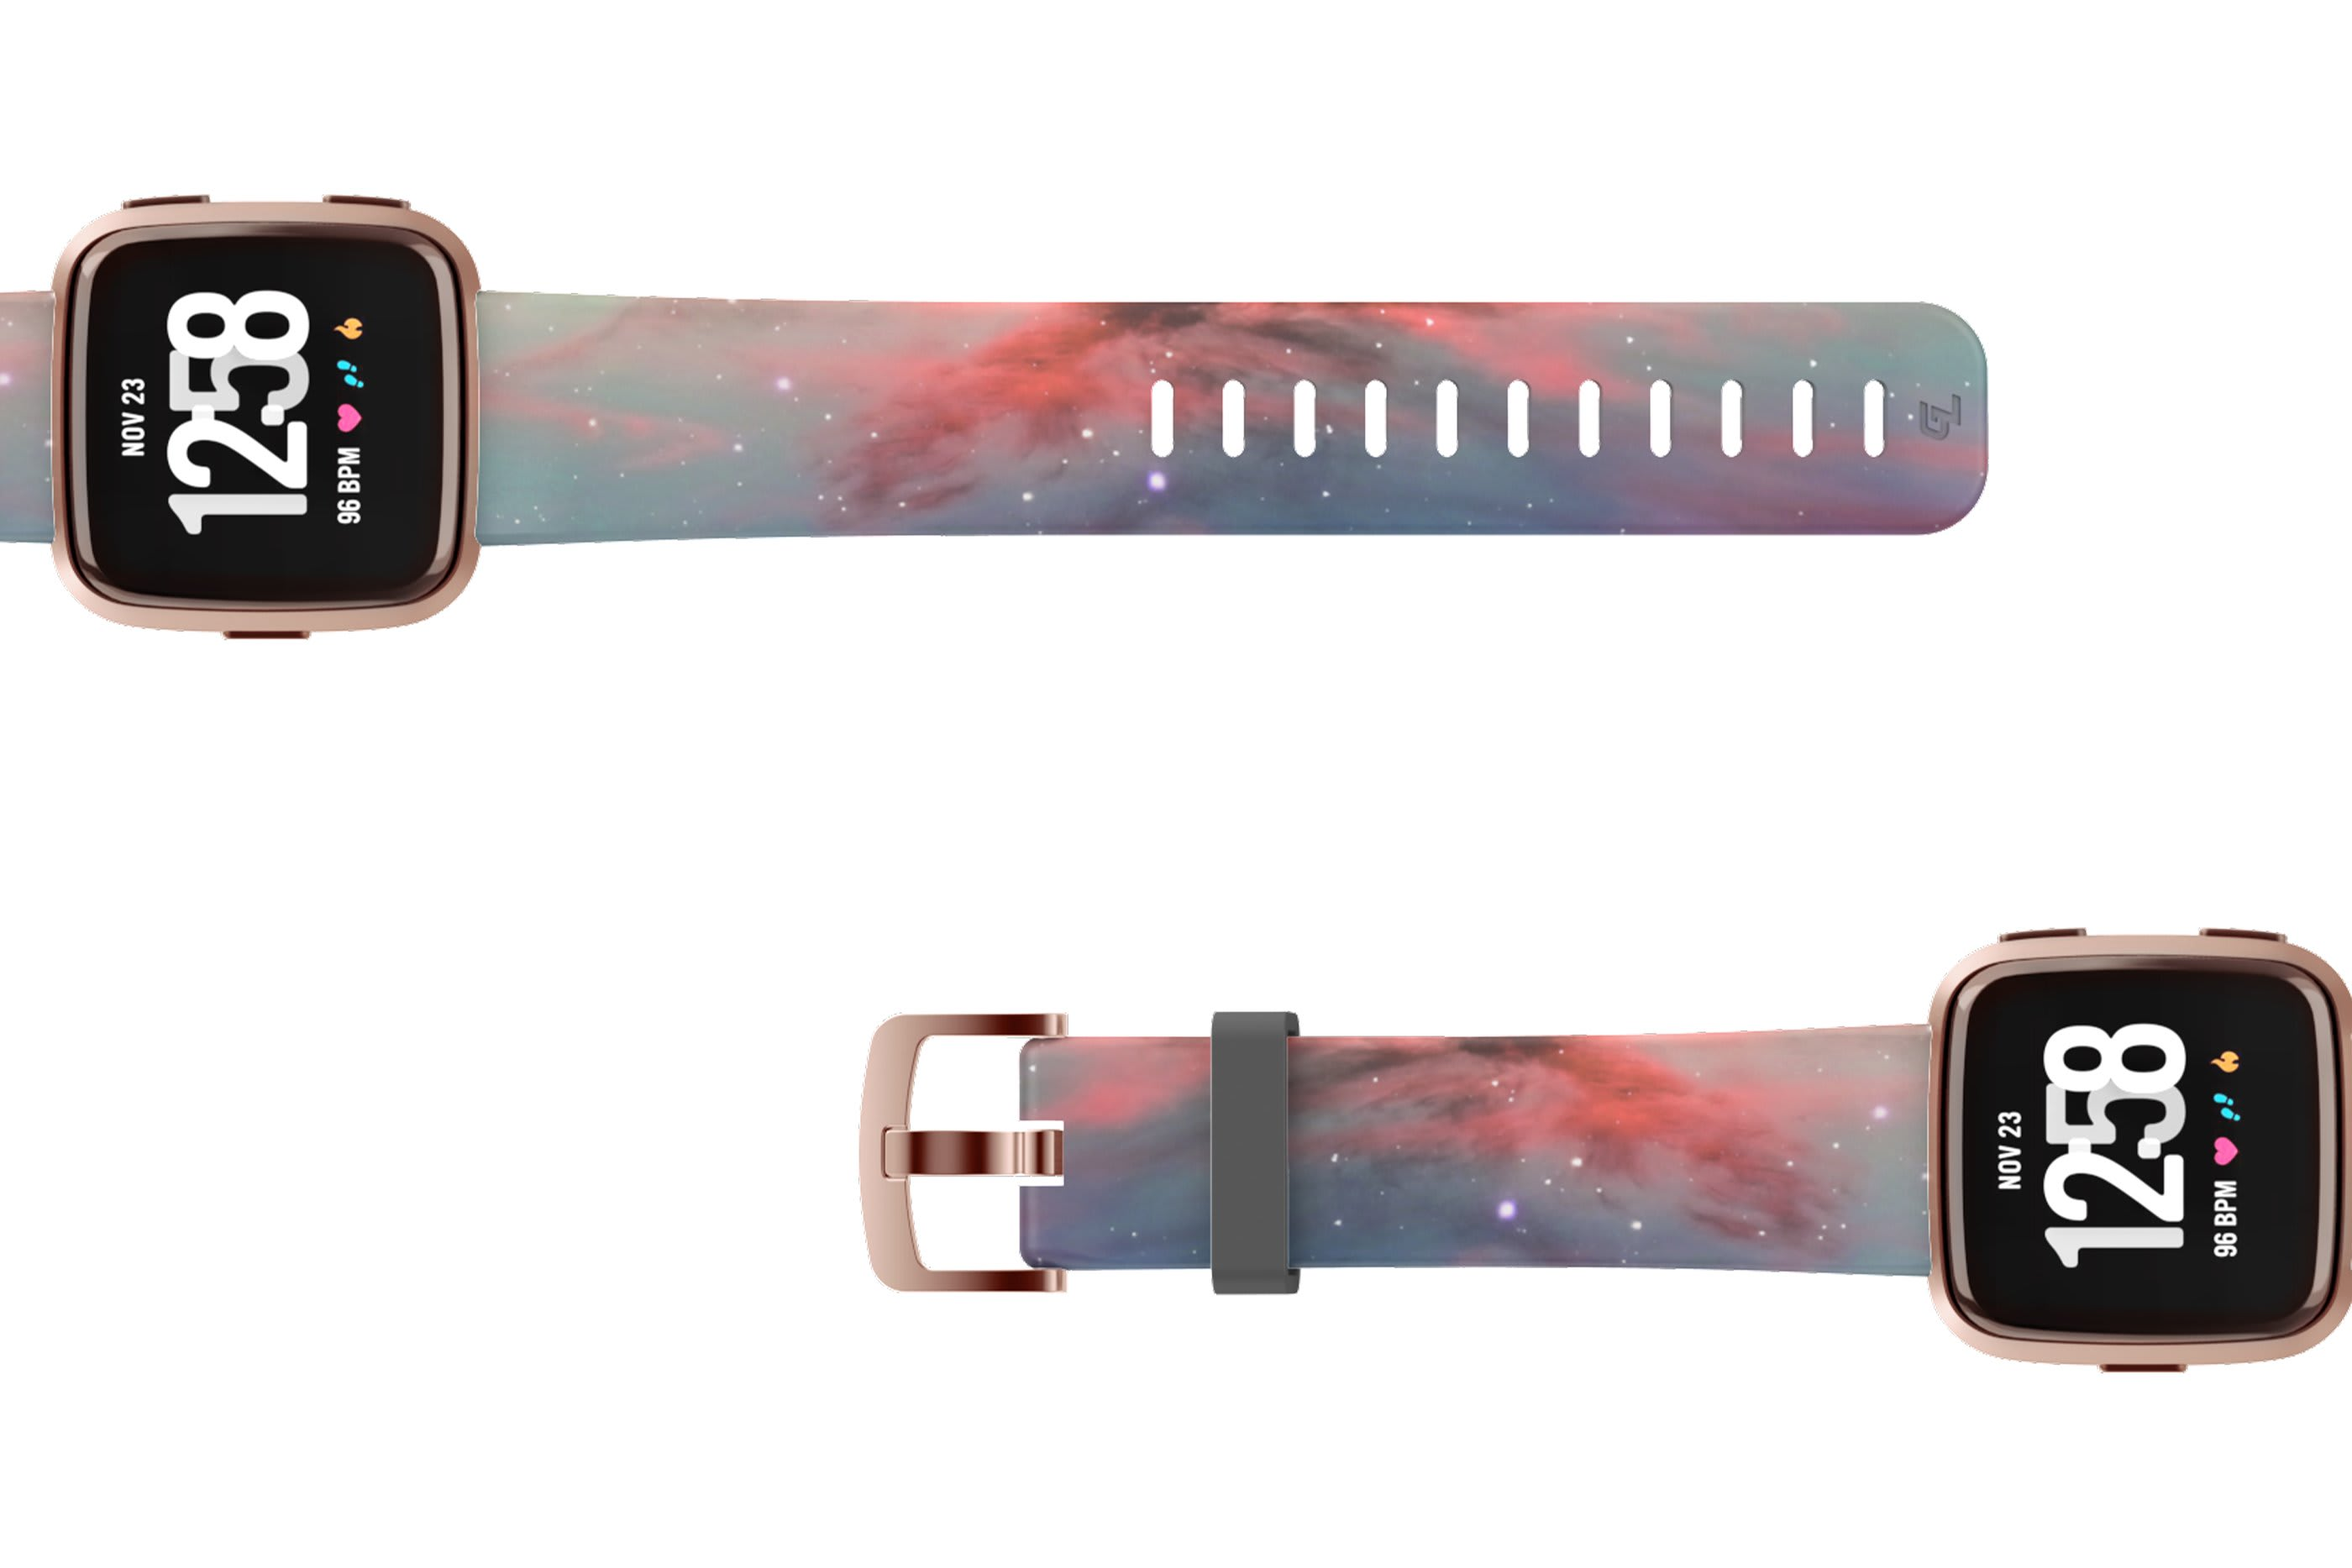 Cirrus Fitbit Versa watch band with rose gold hardware viewed top down